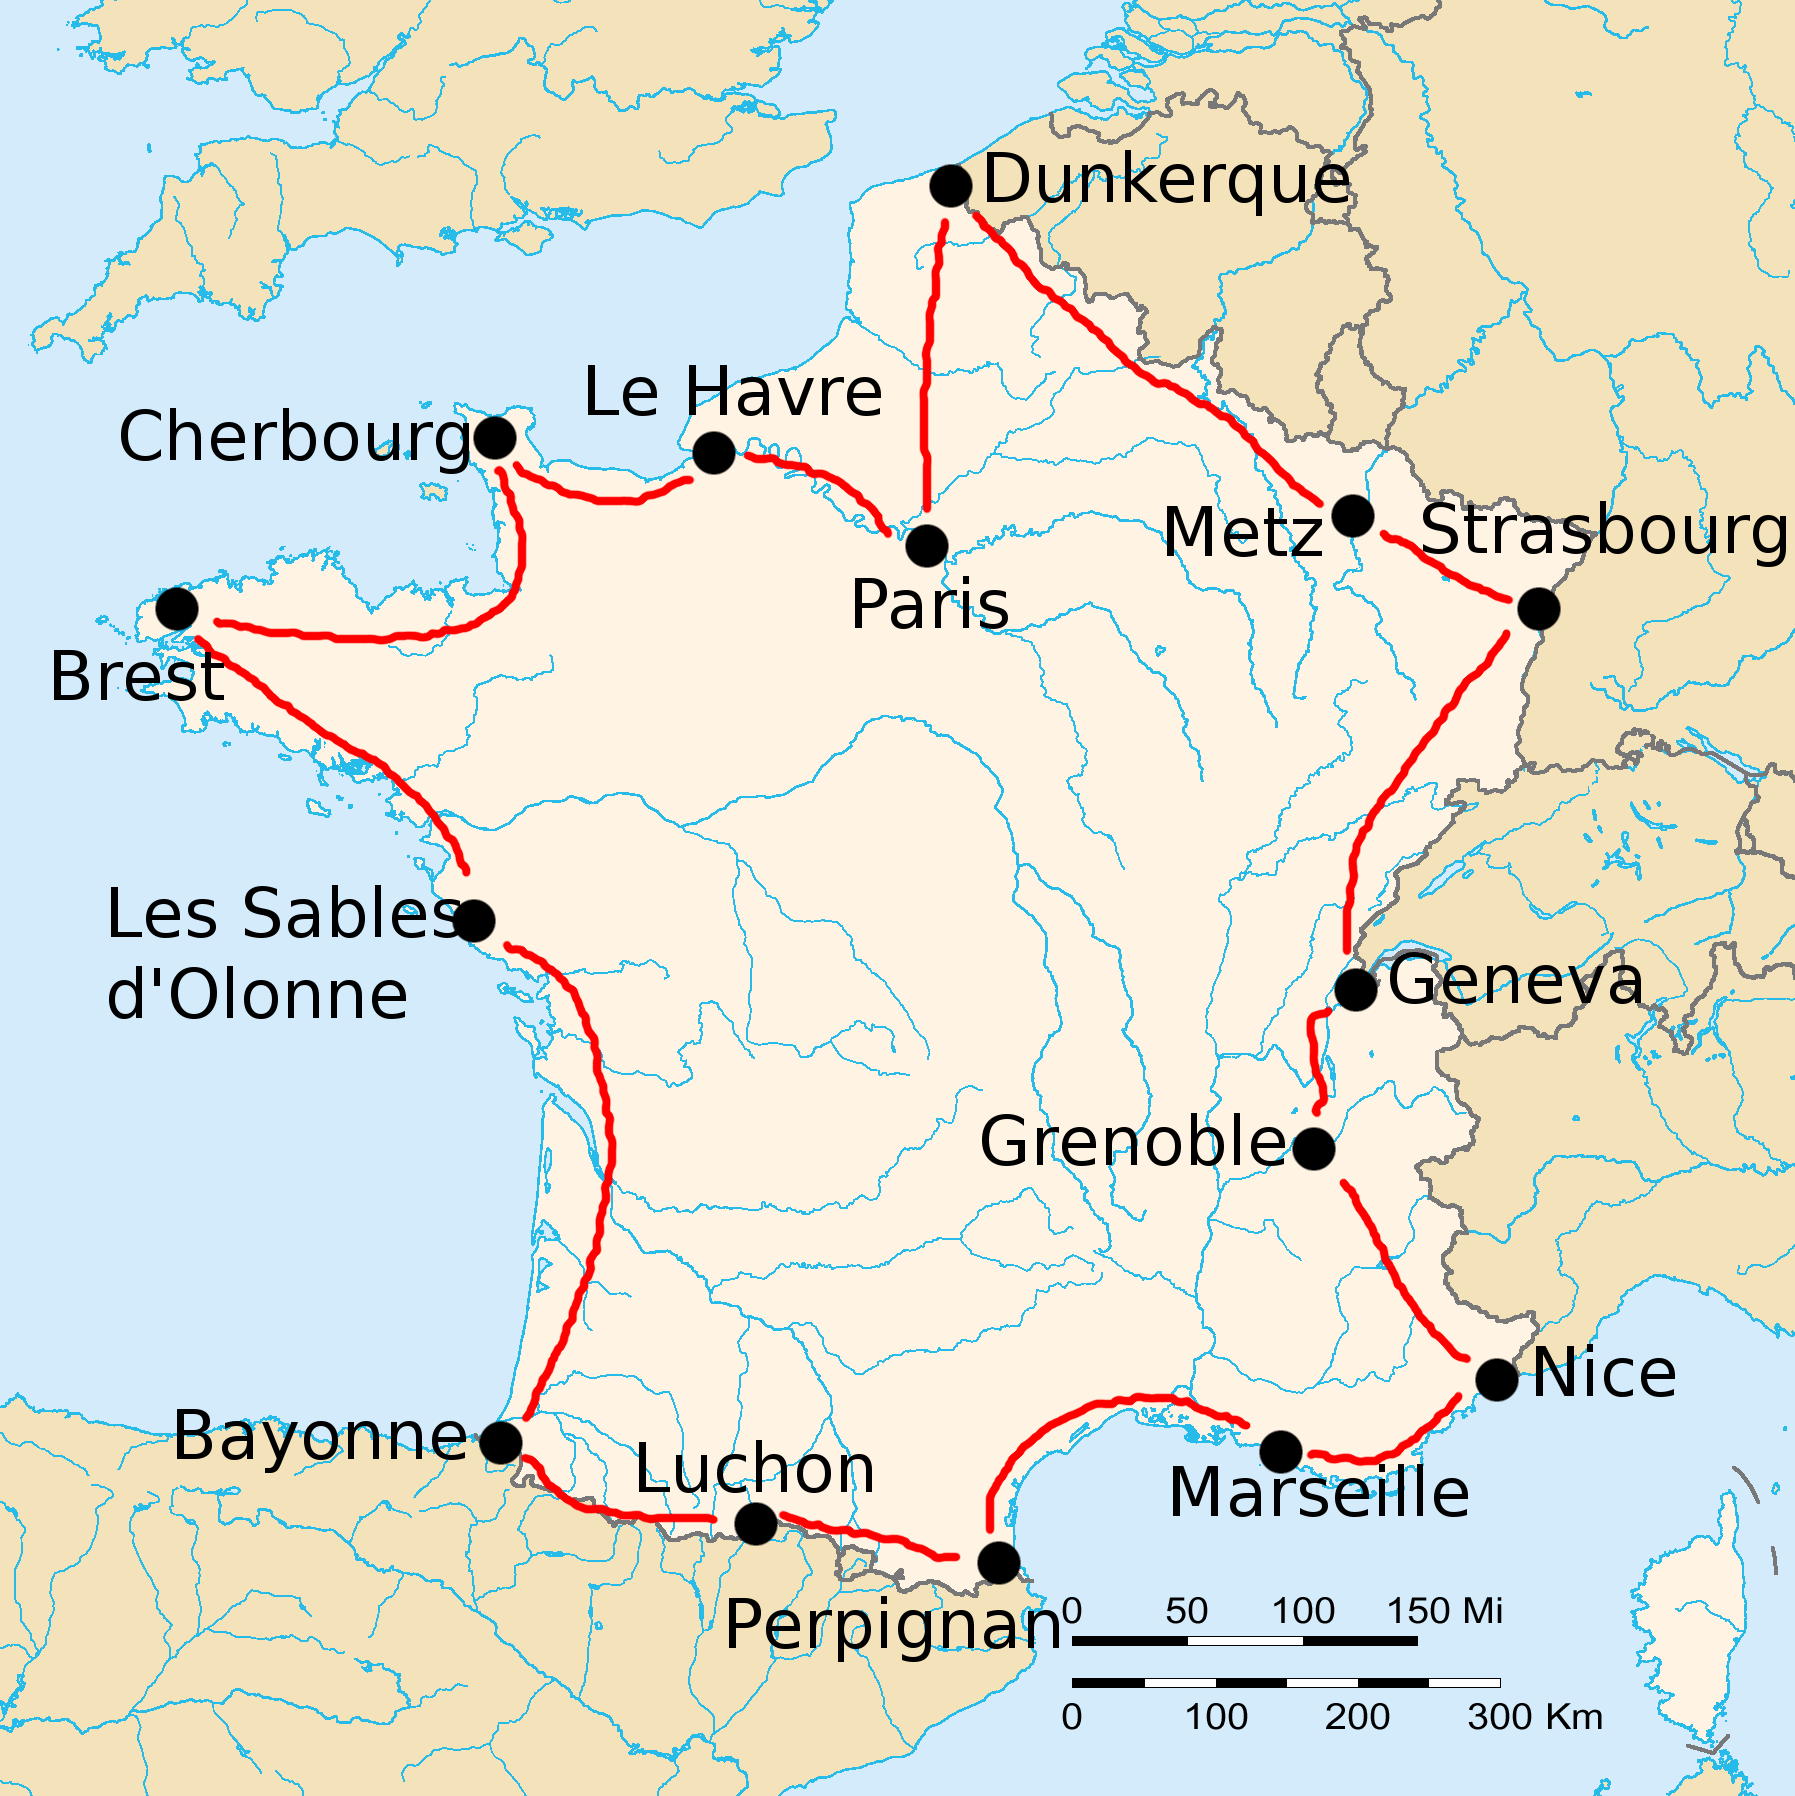 The 1919 Tour de France: 5,500 km in 15 stages